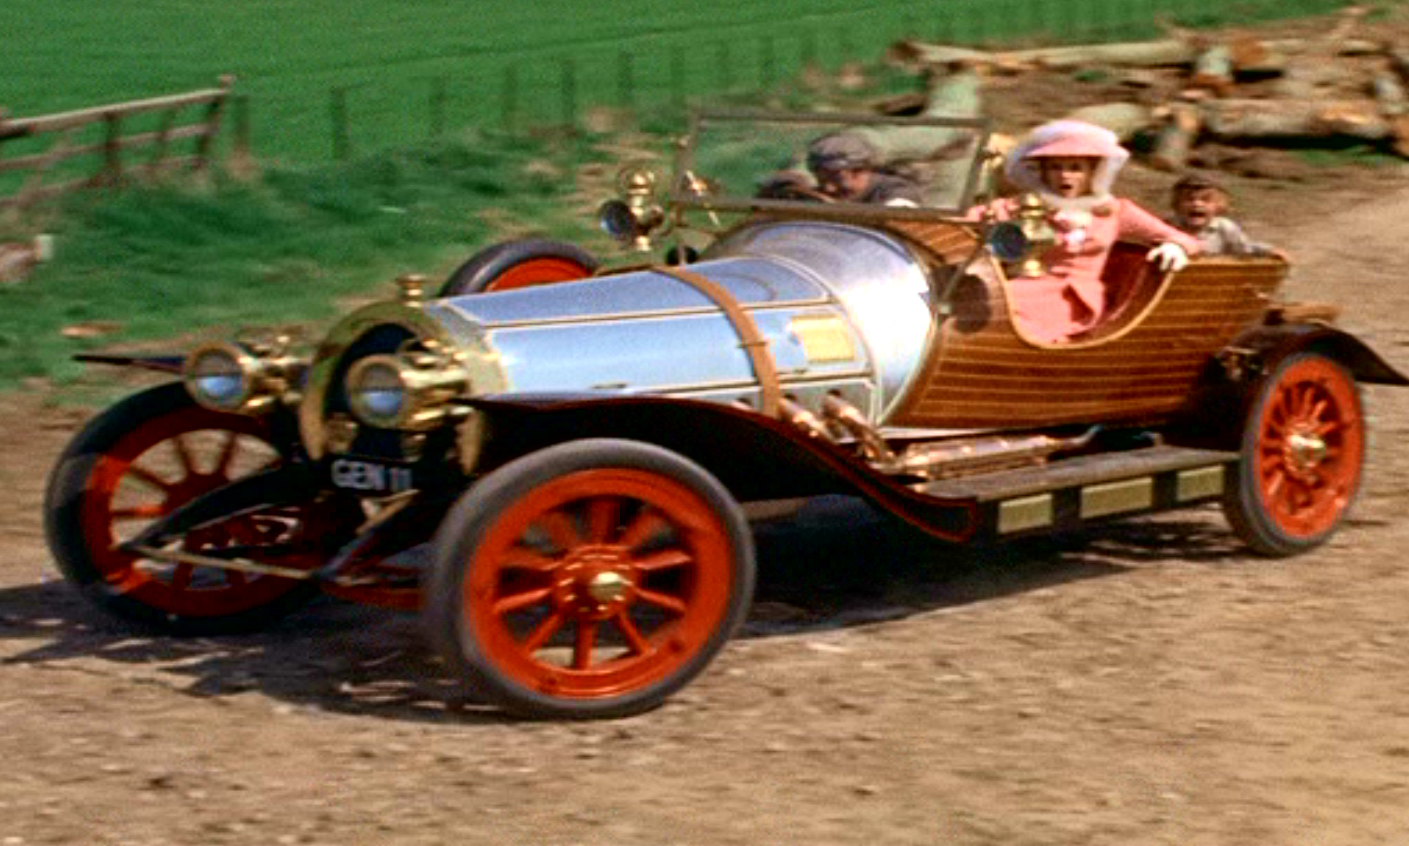 Chitty Chitty Bang Bang Car 2 Chitty Chitty Bang Bang to be Sold at Auction